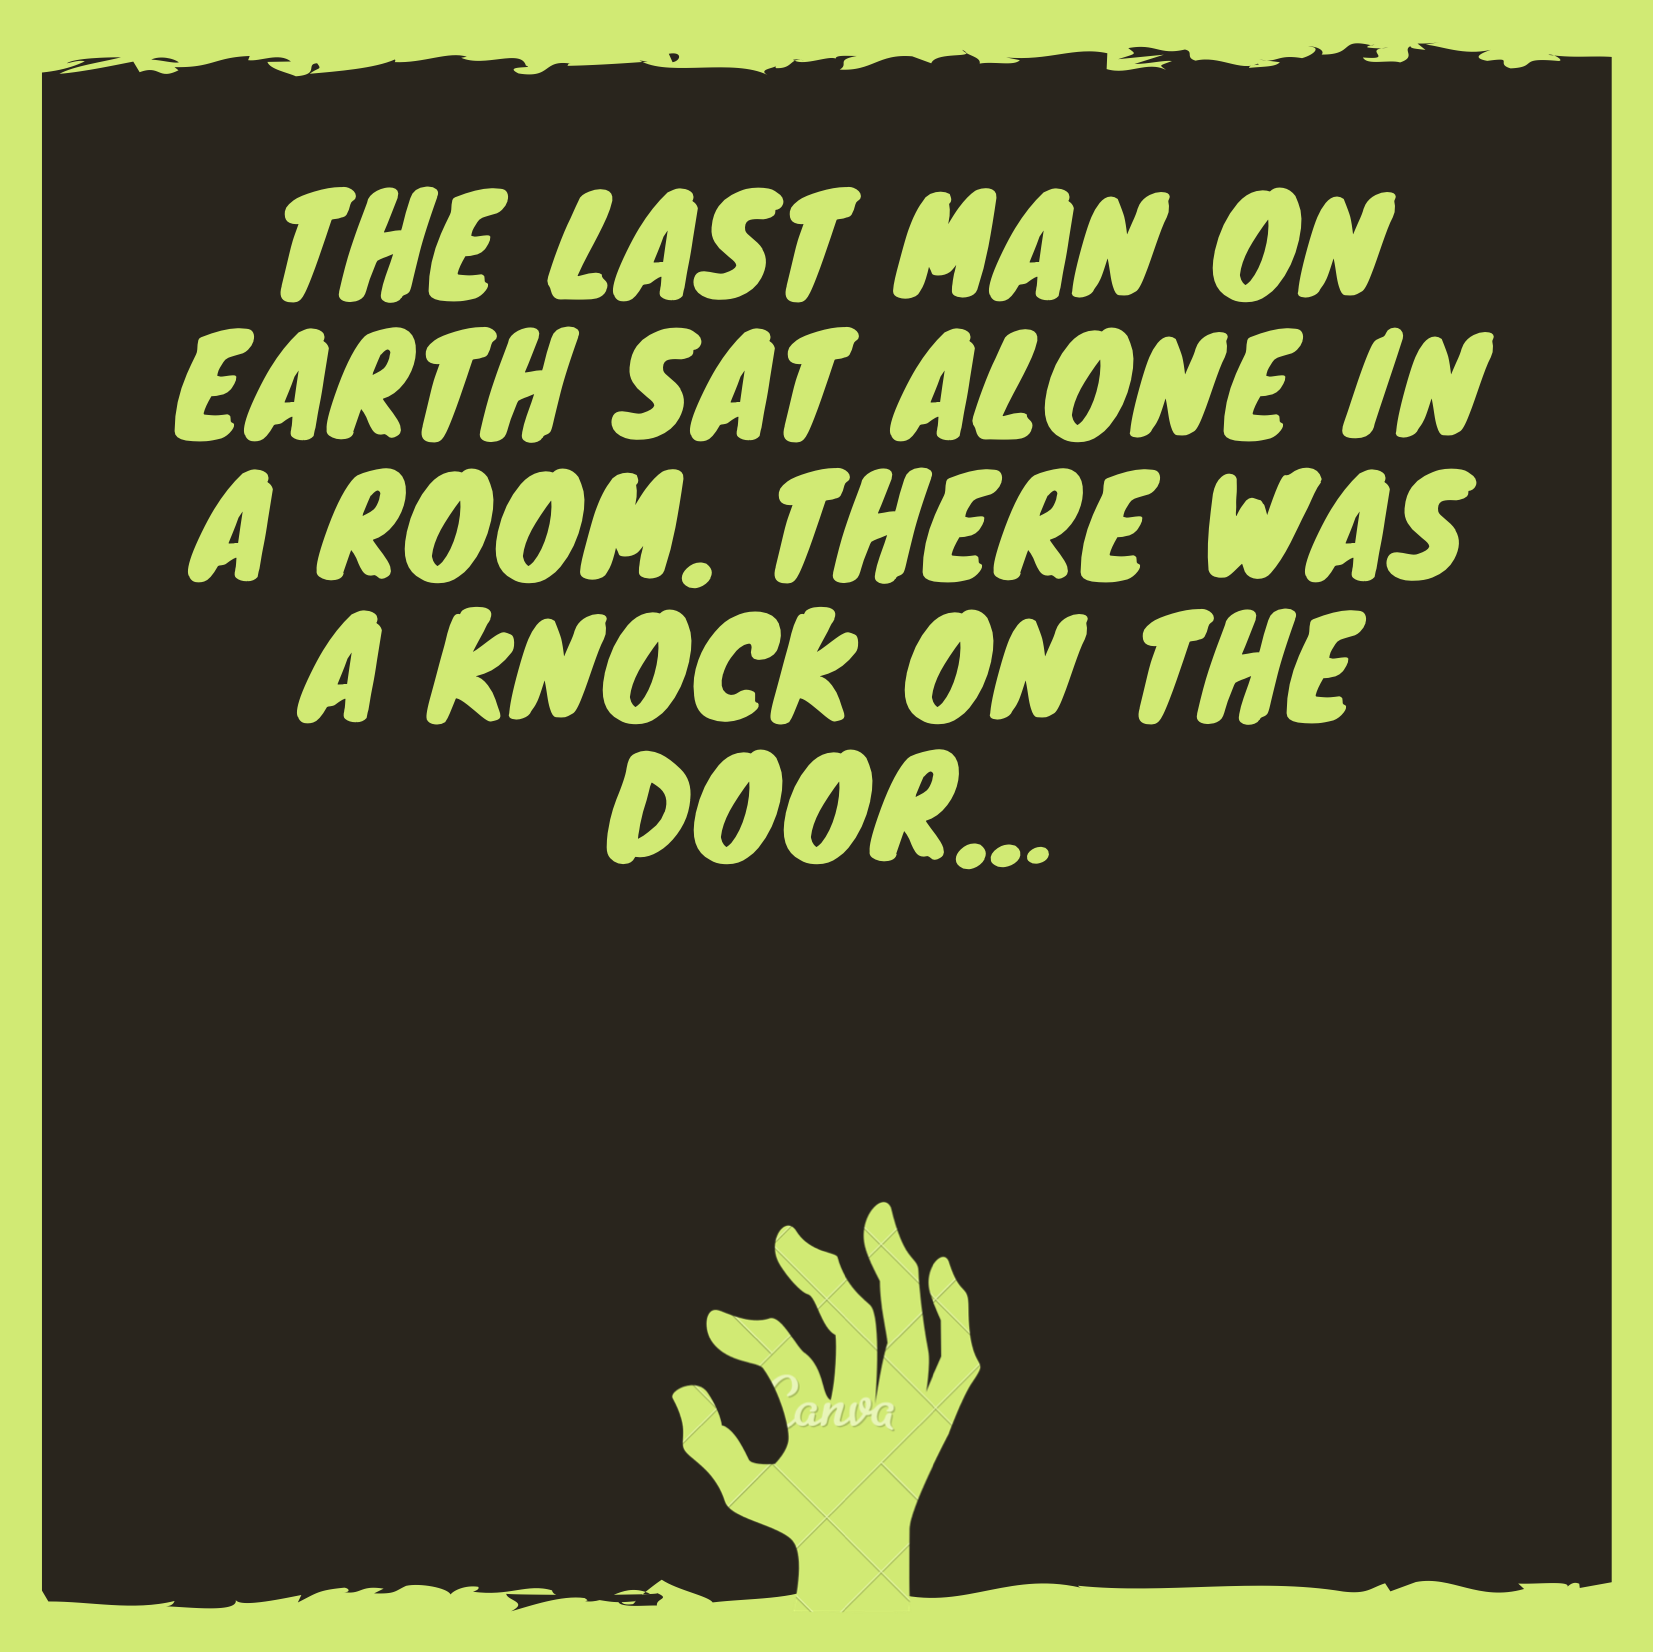 The last man on earth sat alone in a room. There was a knock on the door…